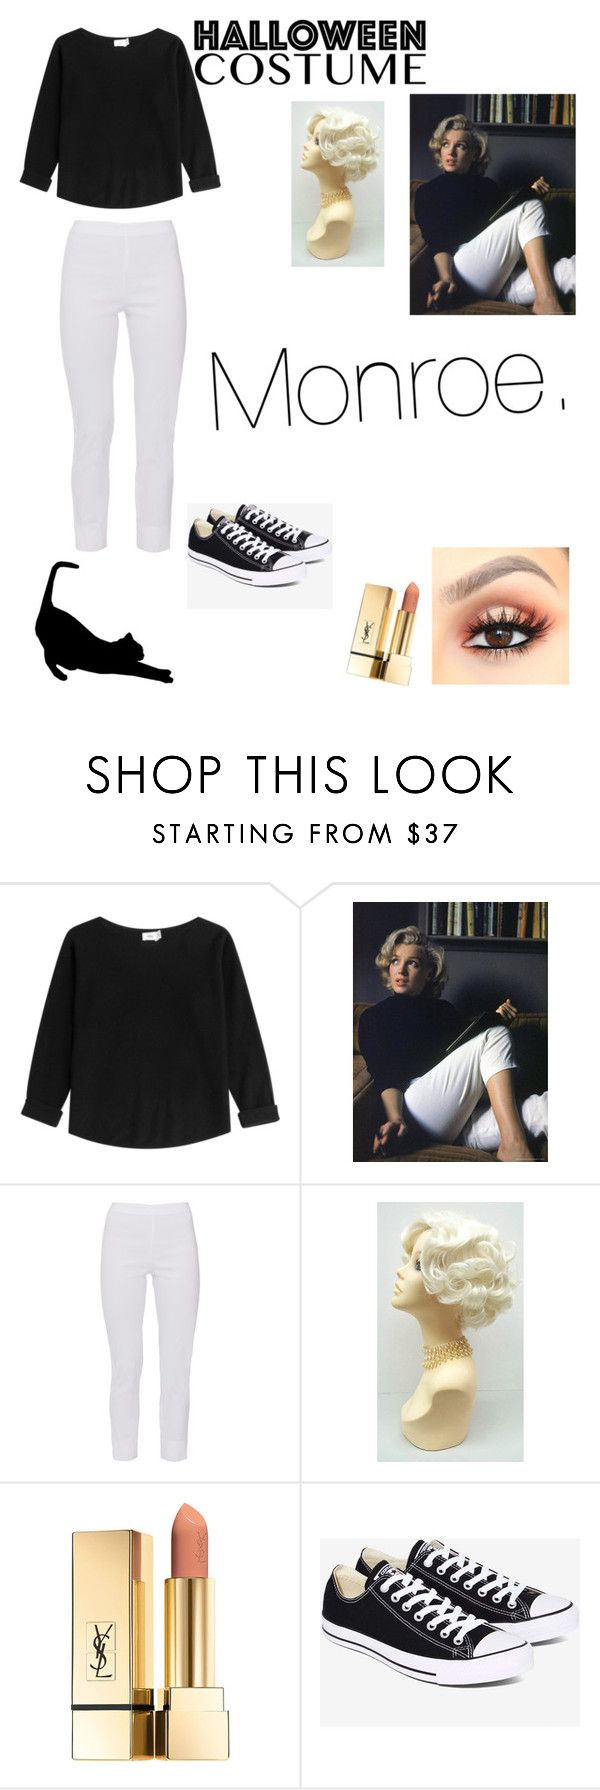 """MARILYN MONROE DIY Halloween costume"" by tennleydawkins ❤ liked on Polyvore featuring Vince, Equestrian, Converse, halloweencostume and DIYHalloween"